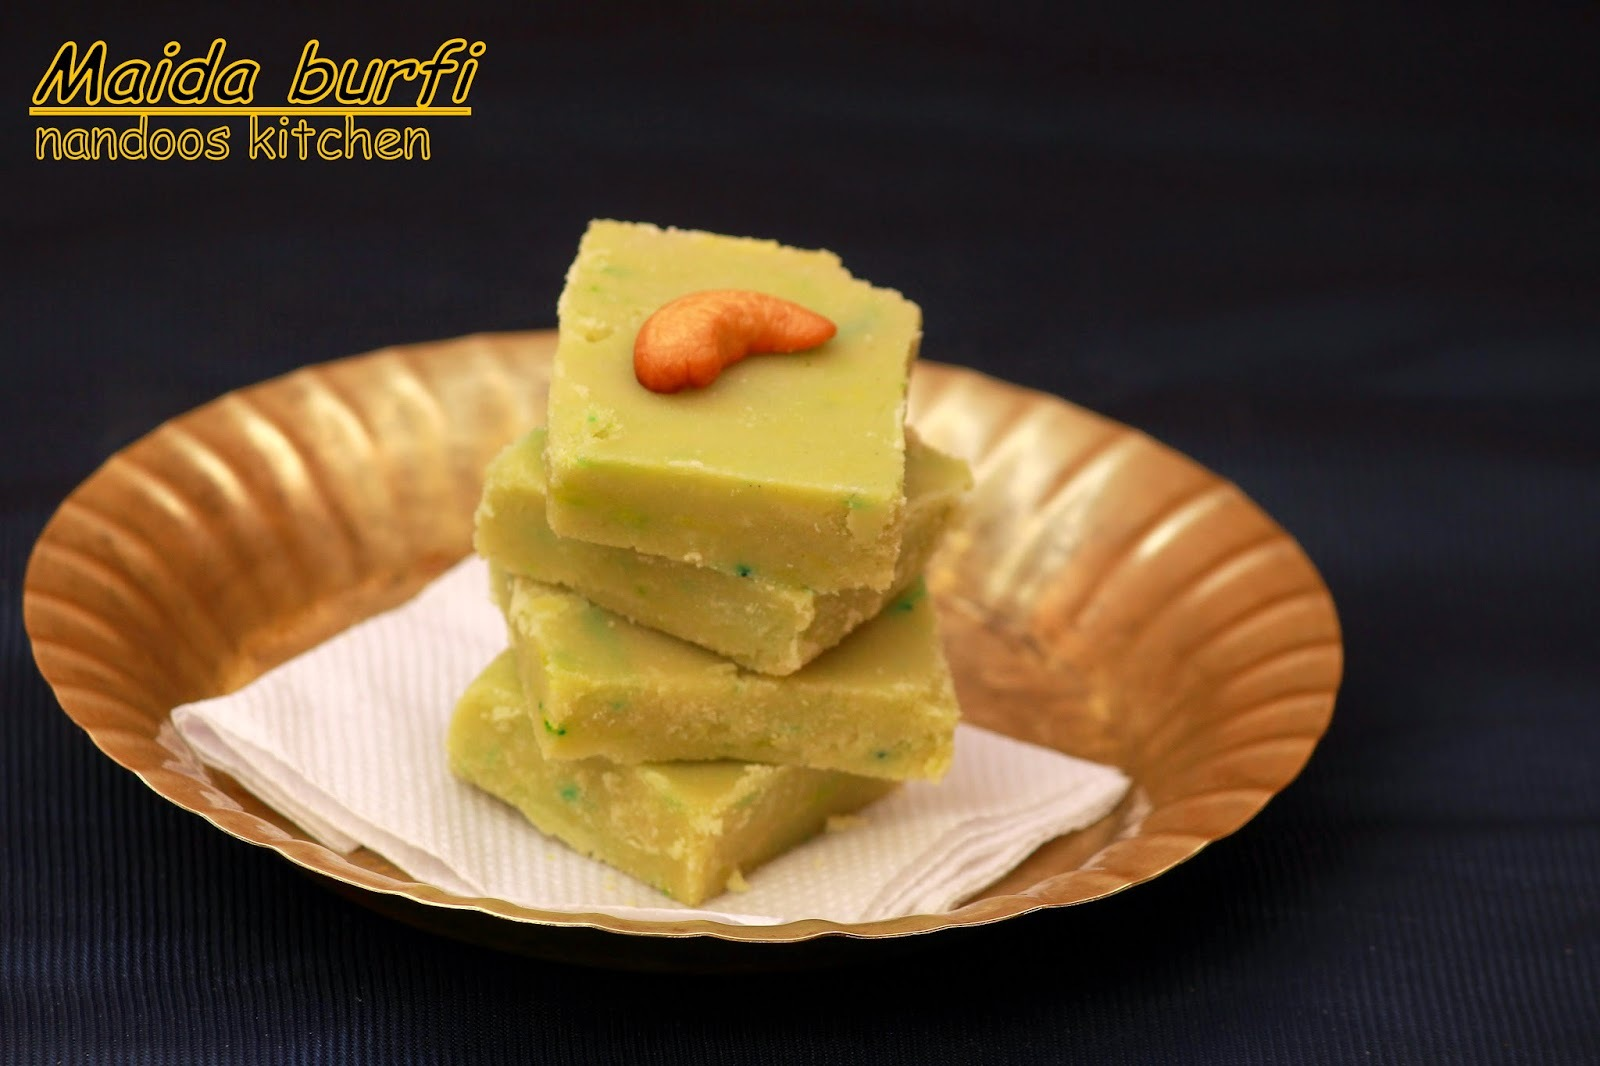 Maida burfi / Maida cake / Easy diwali sweet